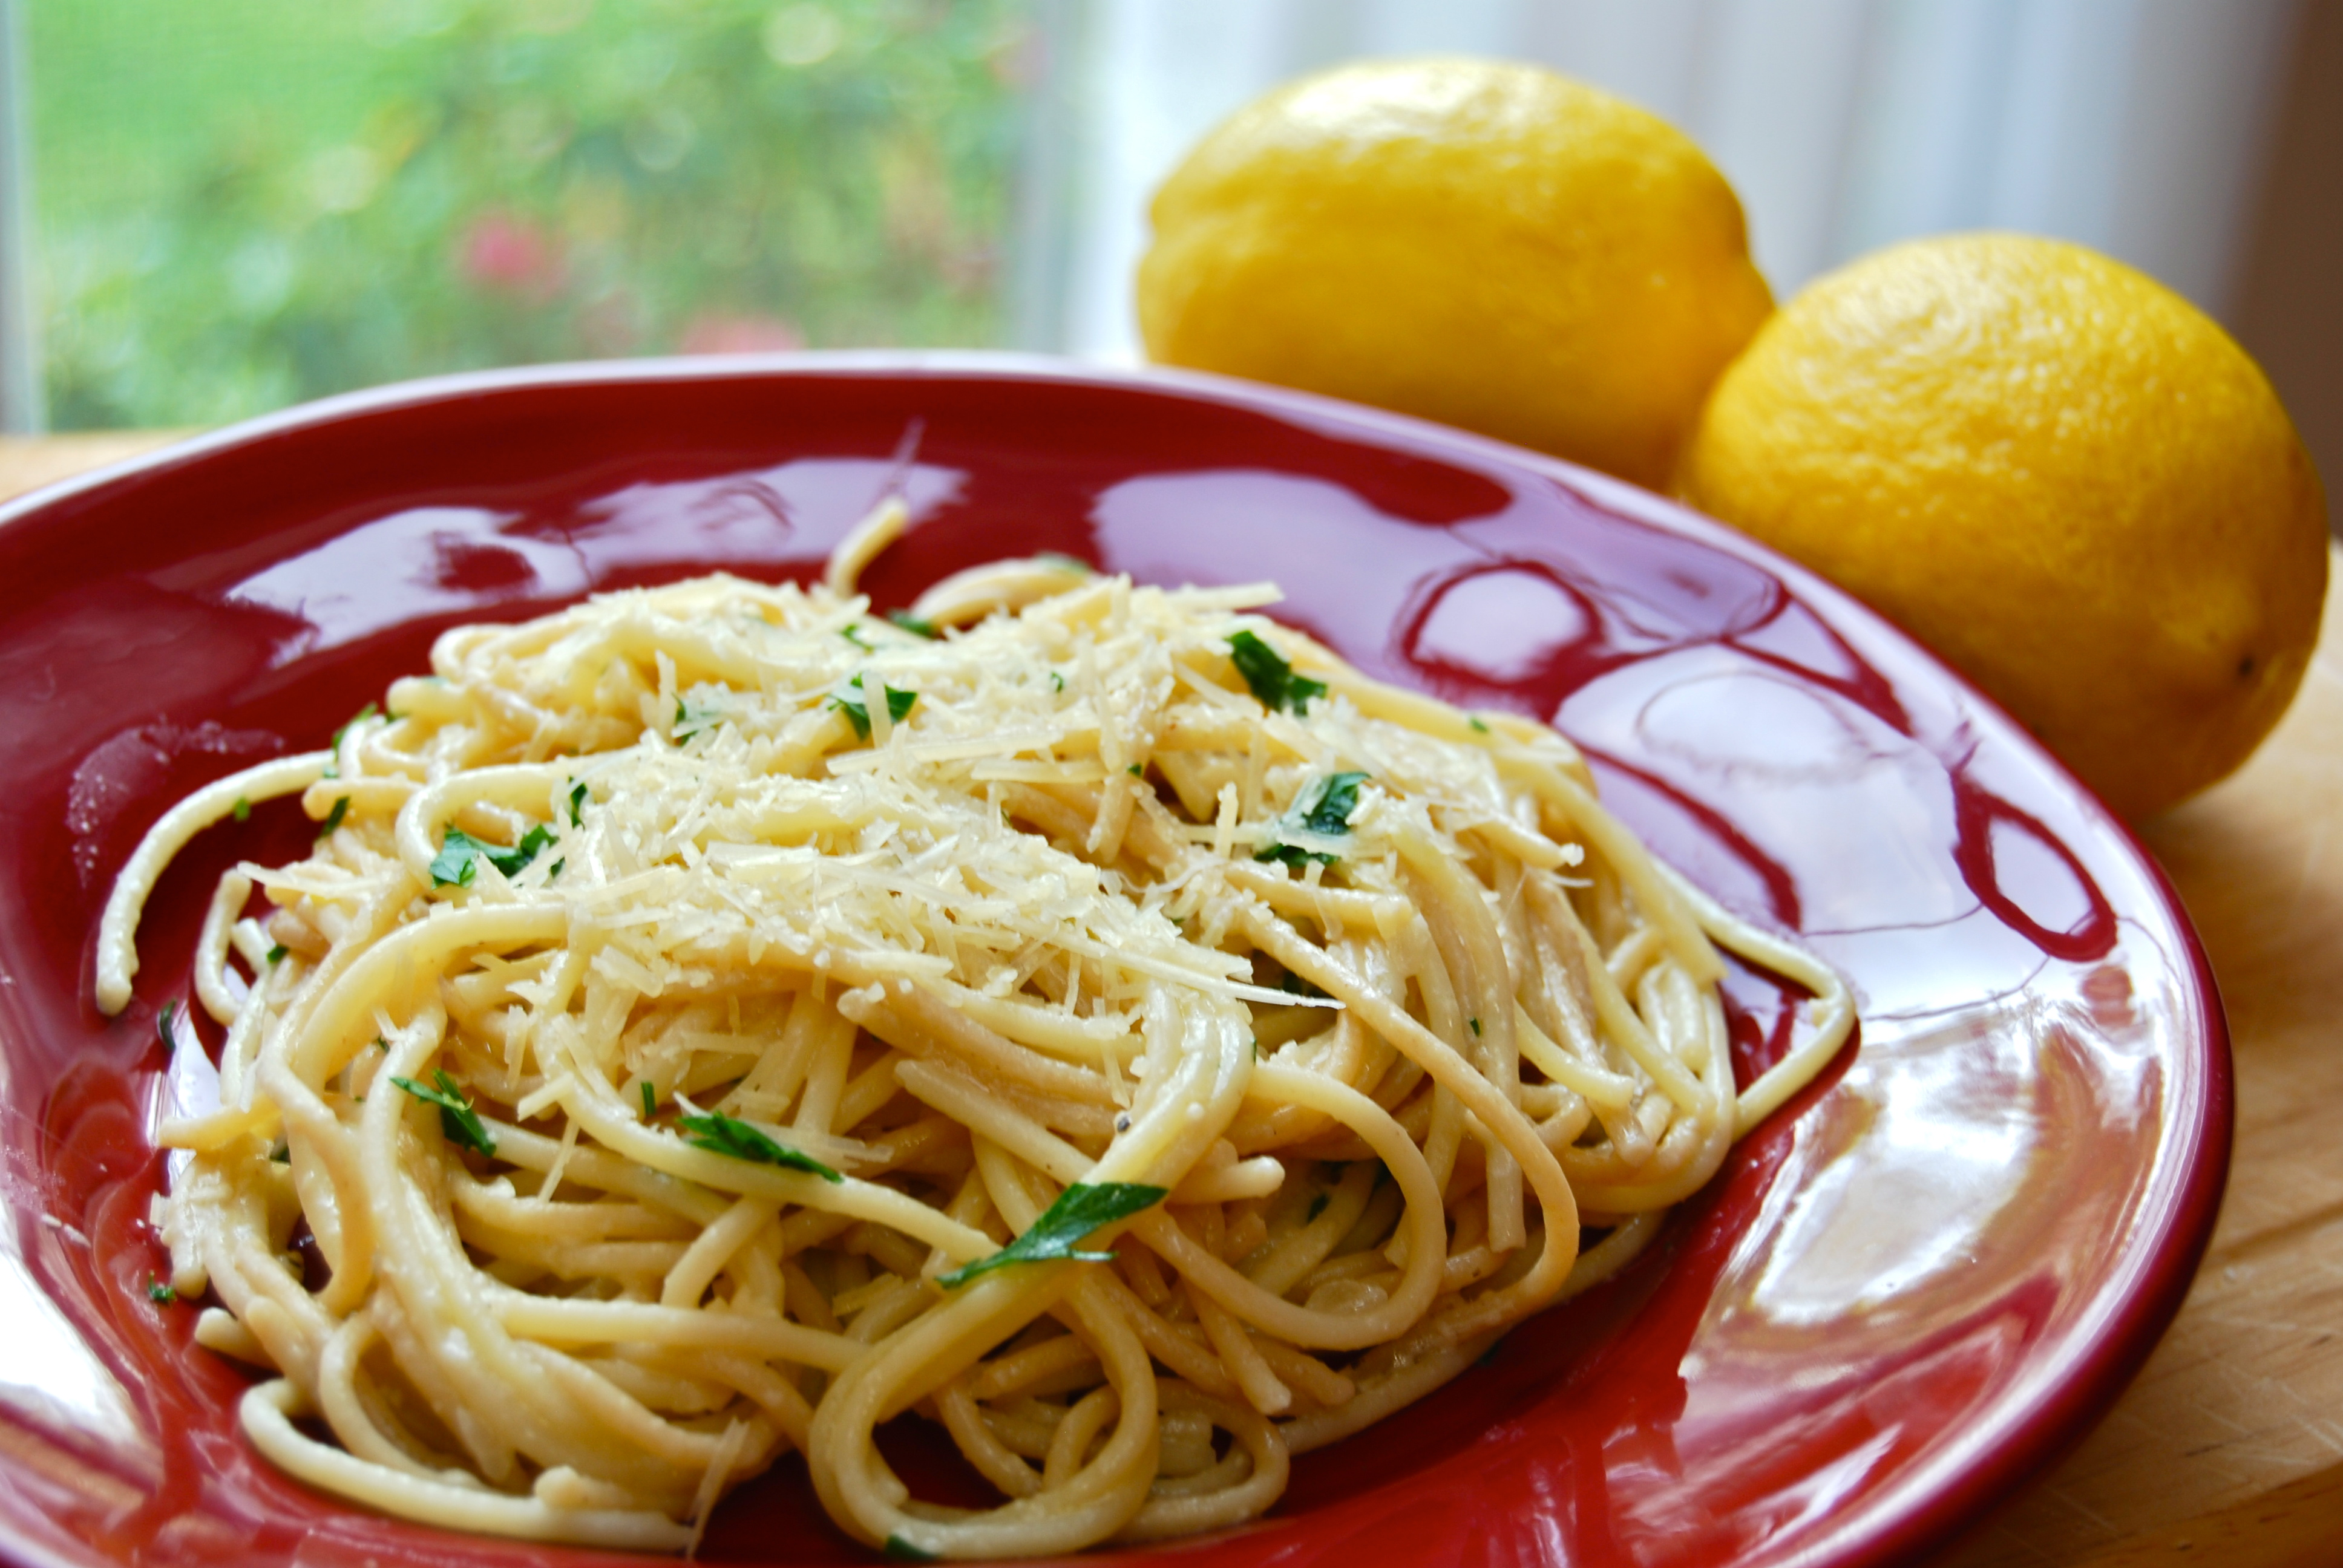 Spaghetti with Lemon and Olive Oil (al Limone)